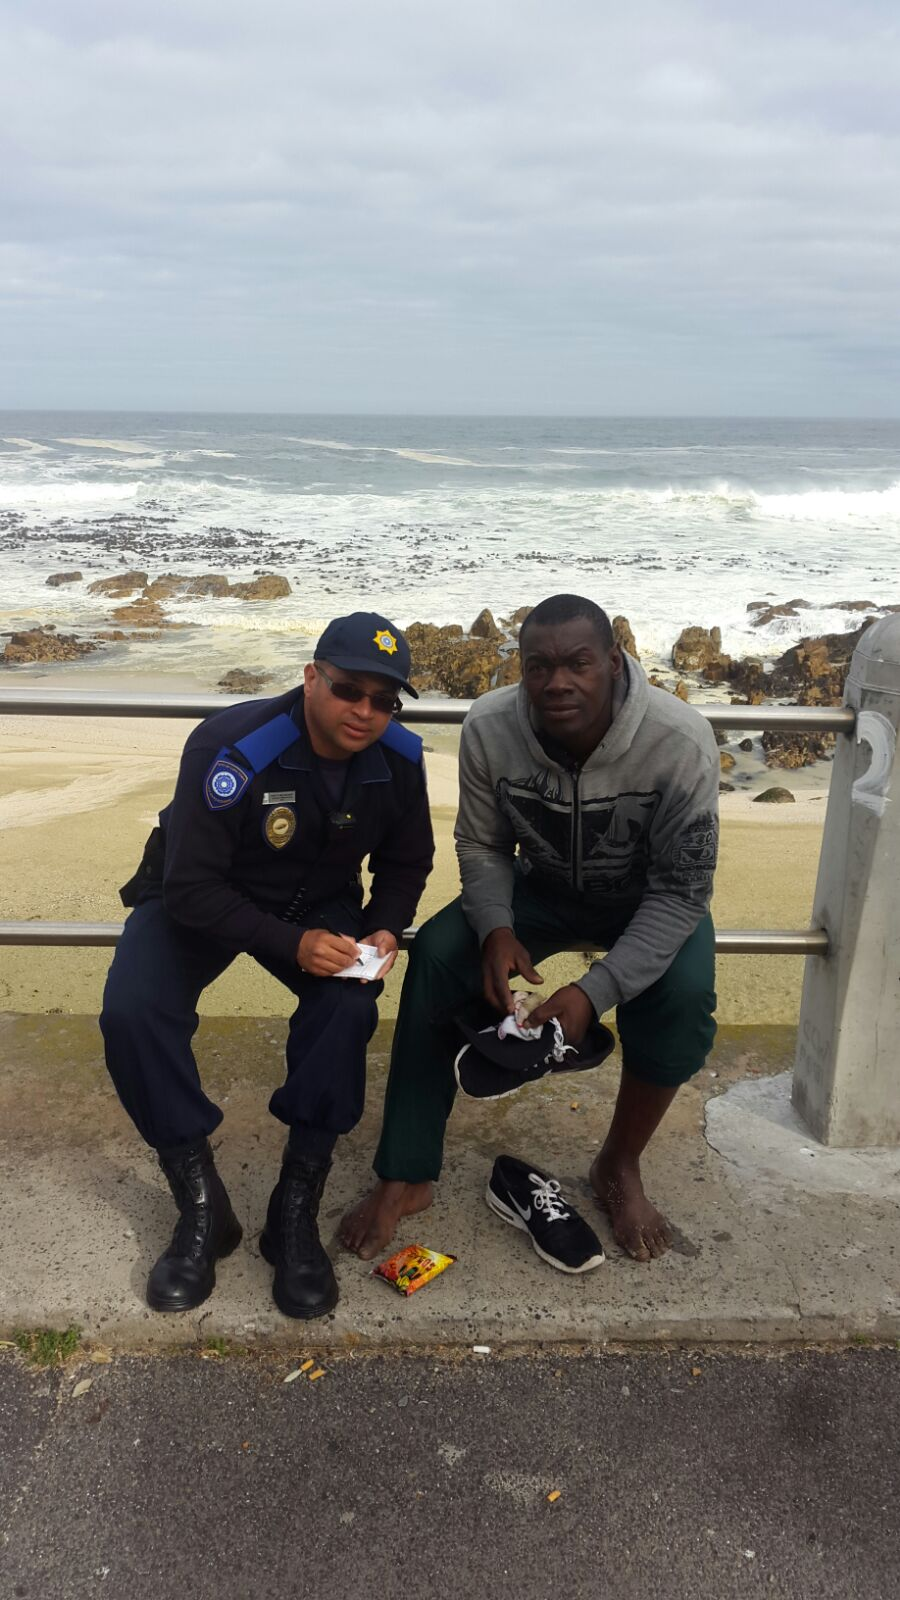 Thembinkosi Gqotso, who rescued a 38 year old Limpopo man from the sea at Queens Beach, Sea Point, gives details of the incident to Law Enforcement officer Maxwell van Wyk Picture by Shane Fascio, ER24